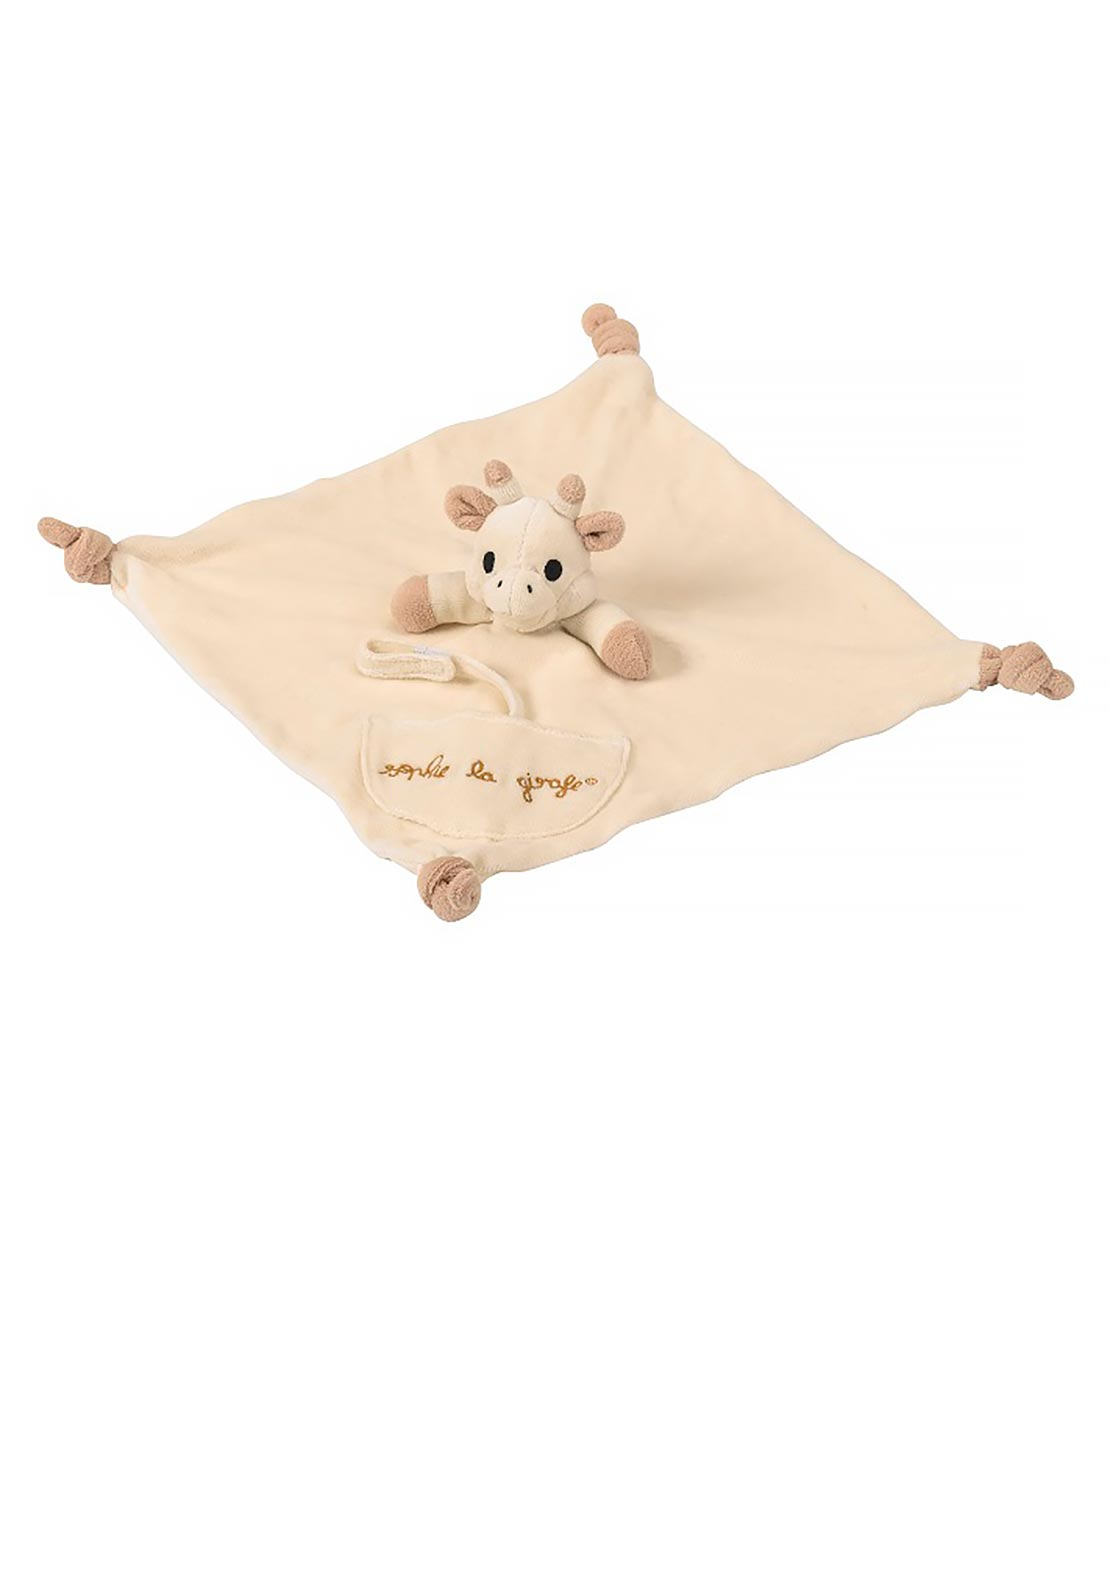 Sophie La Girafe Baby Comforter with Soother Holder, Cream